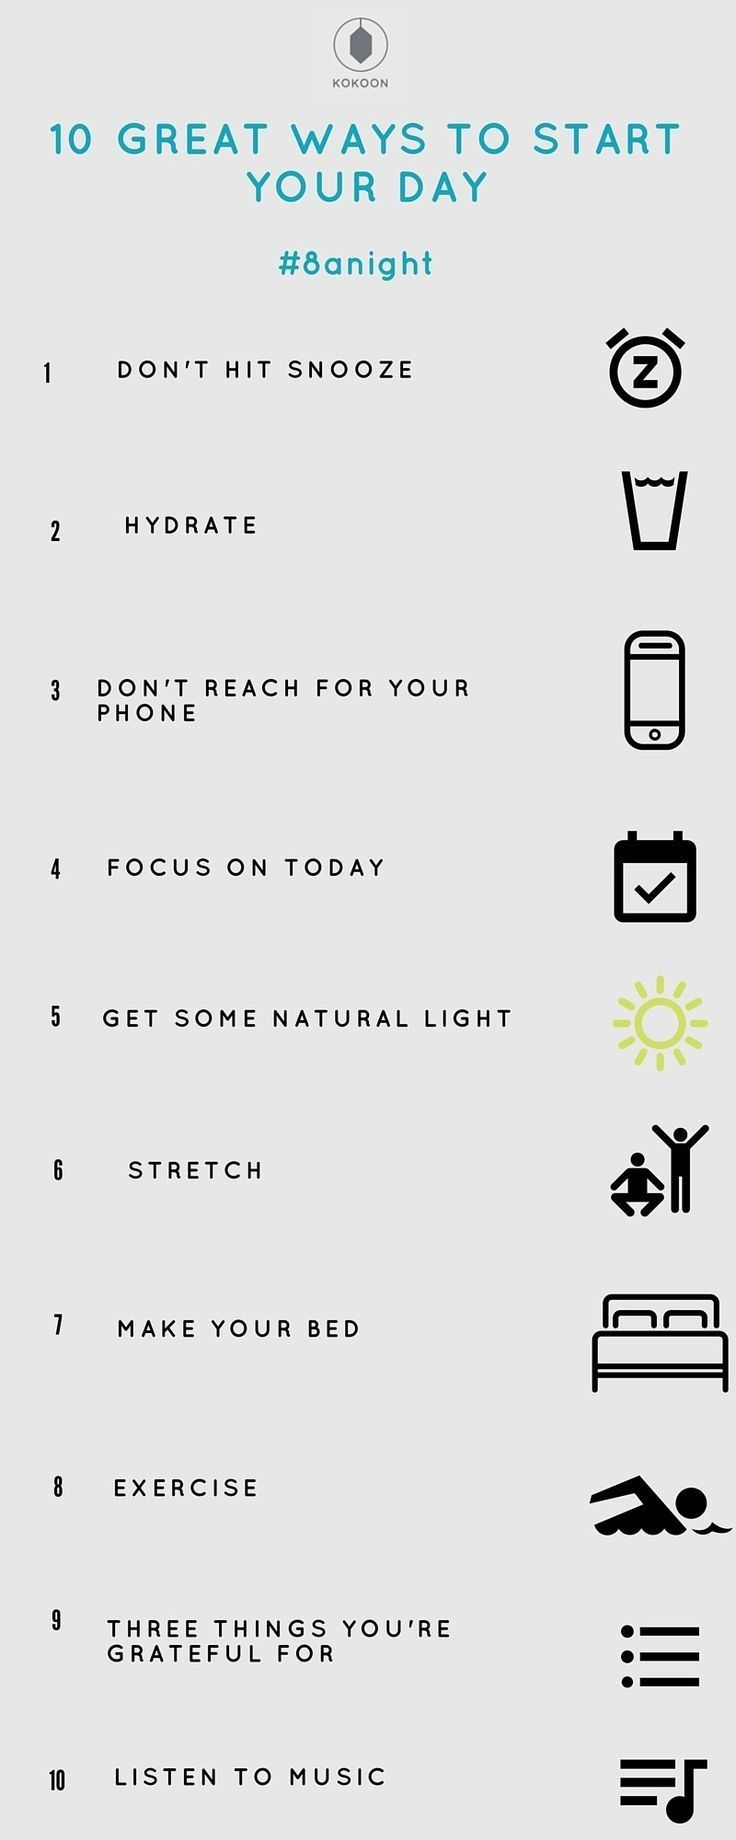 10 great ways to start your day!